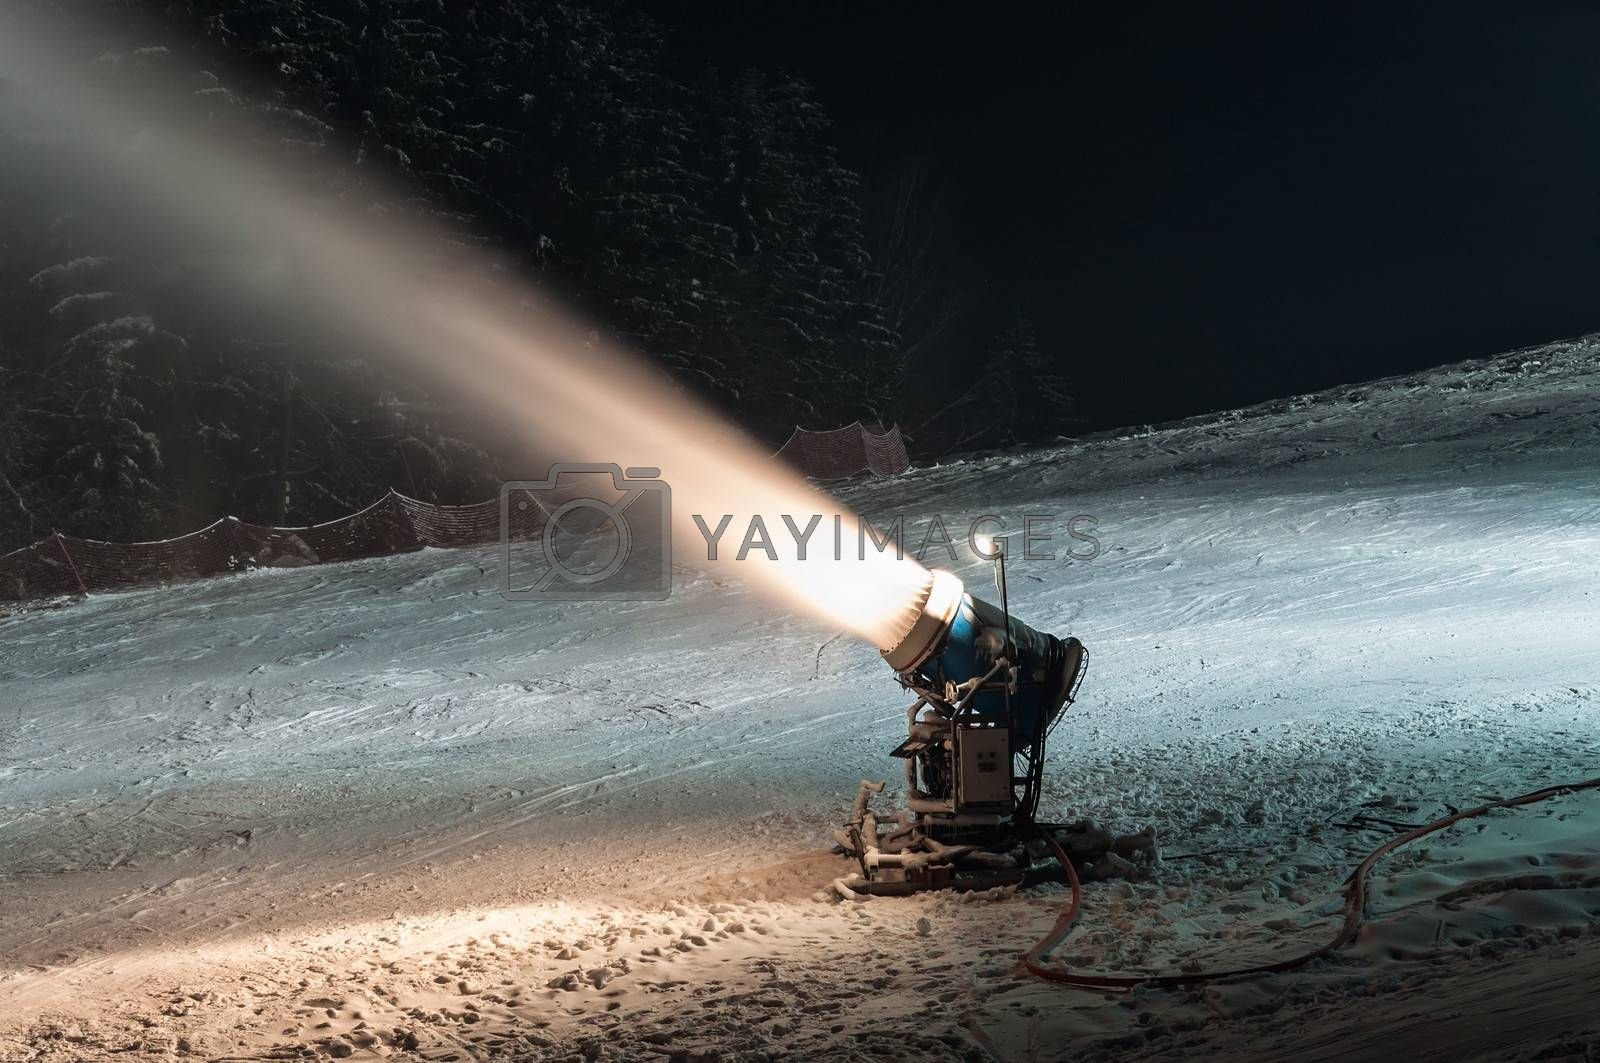 Working snow cannon at night on ski slope.